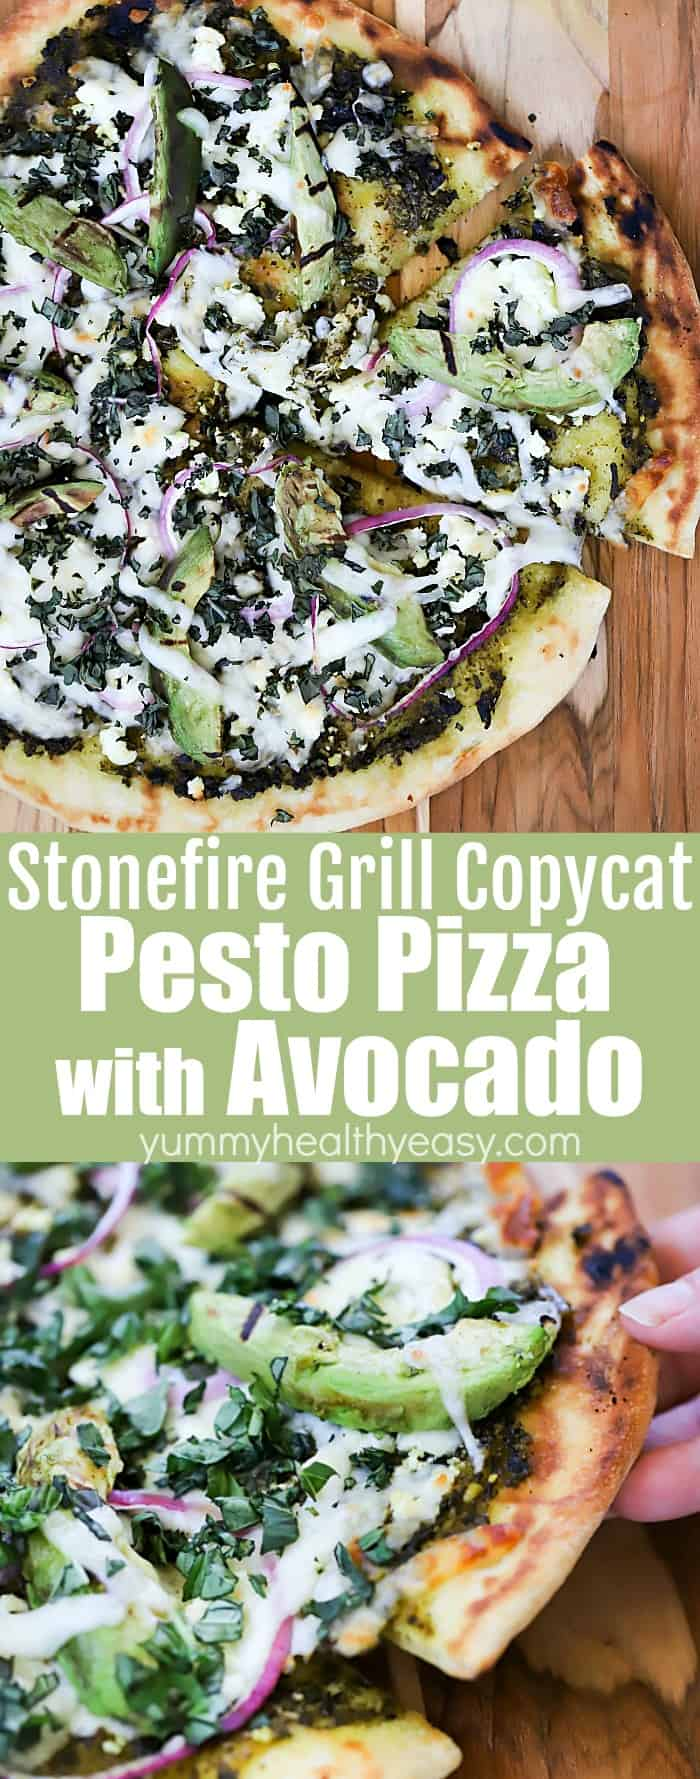 This Grilled Pesto Pizza with Avocado (Stonefire Grill Copycat) is the summer smash you've been looking for! With delicious homemade pesto sauce, two kinds of cheese, red onion, and creamy California Avocados - this is a grilled pizza recipe you're going to want to come back to again and again! 